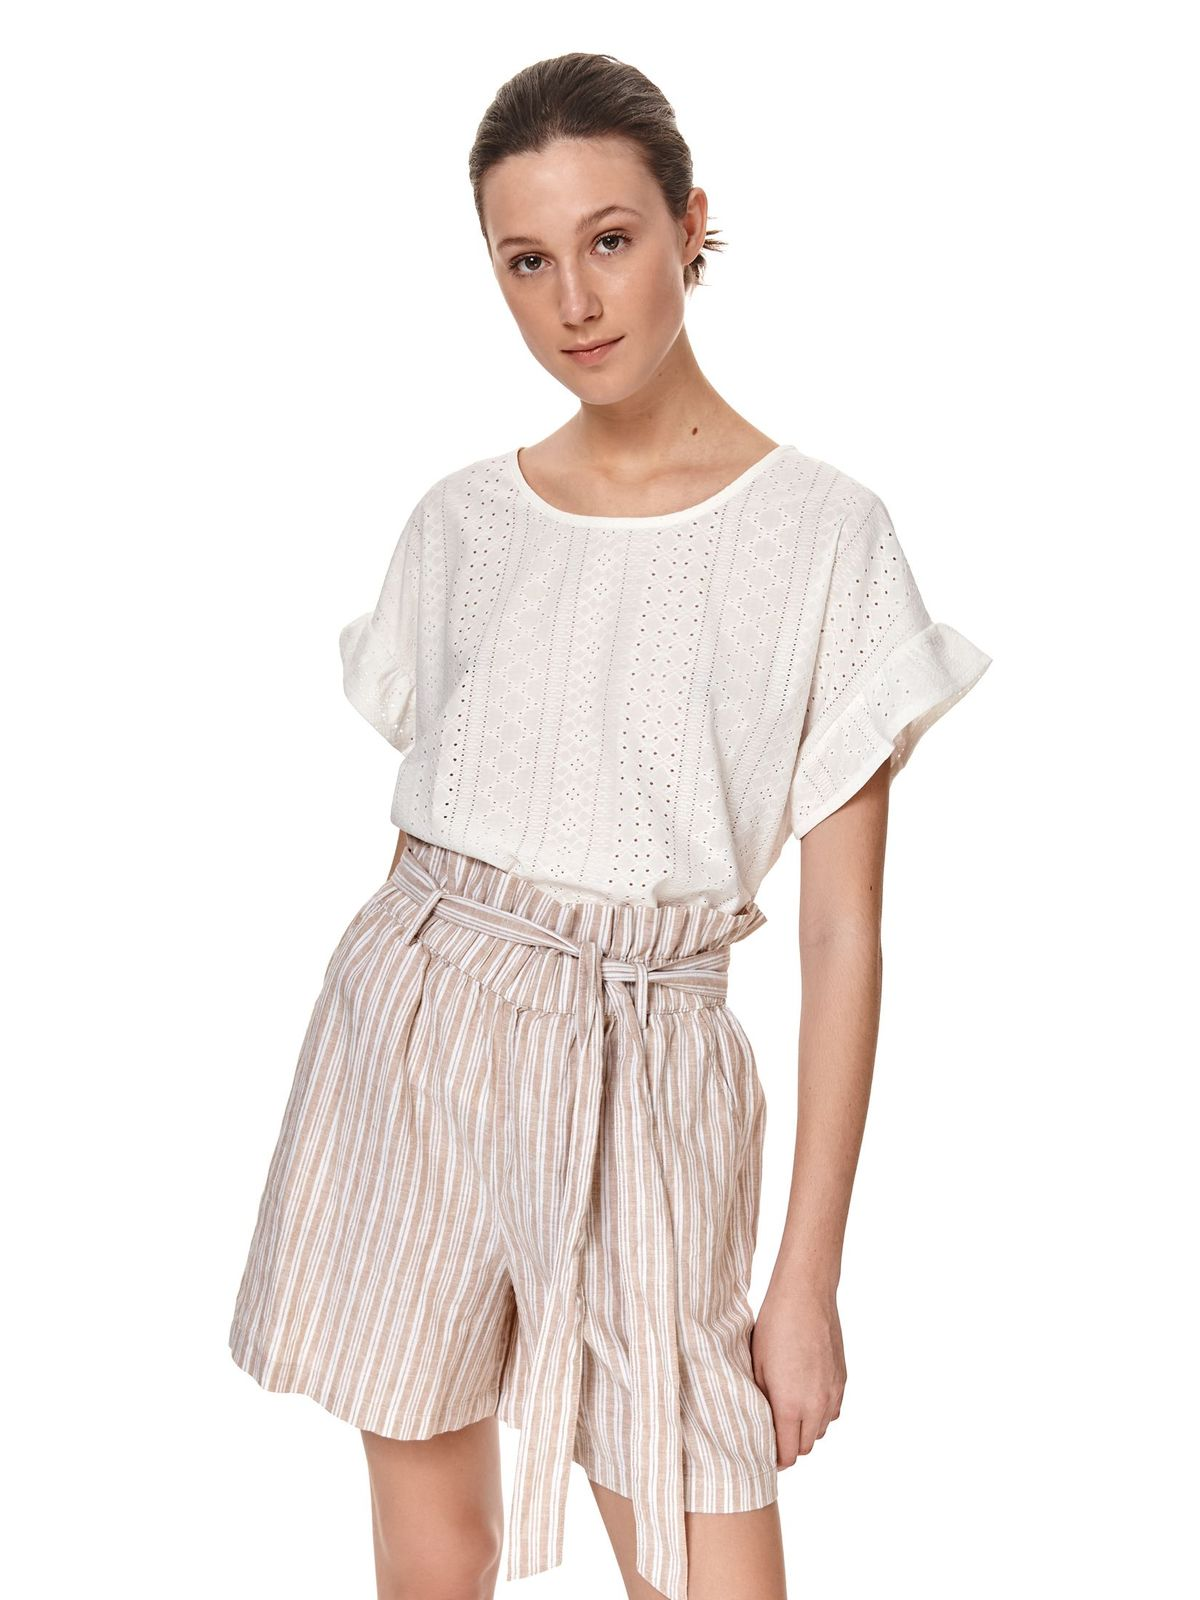 Ivory t-shirt loose fit with ruffle details with rounded cleavage